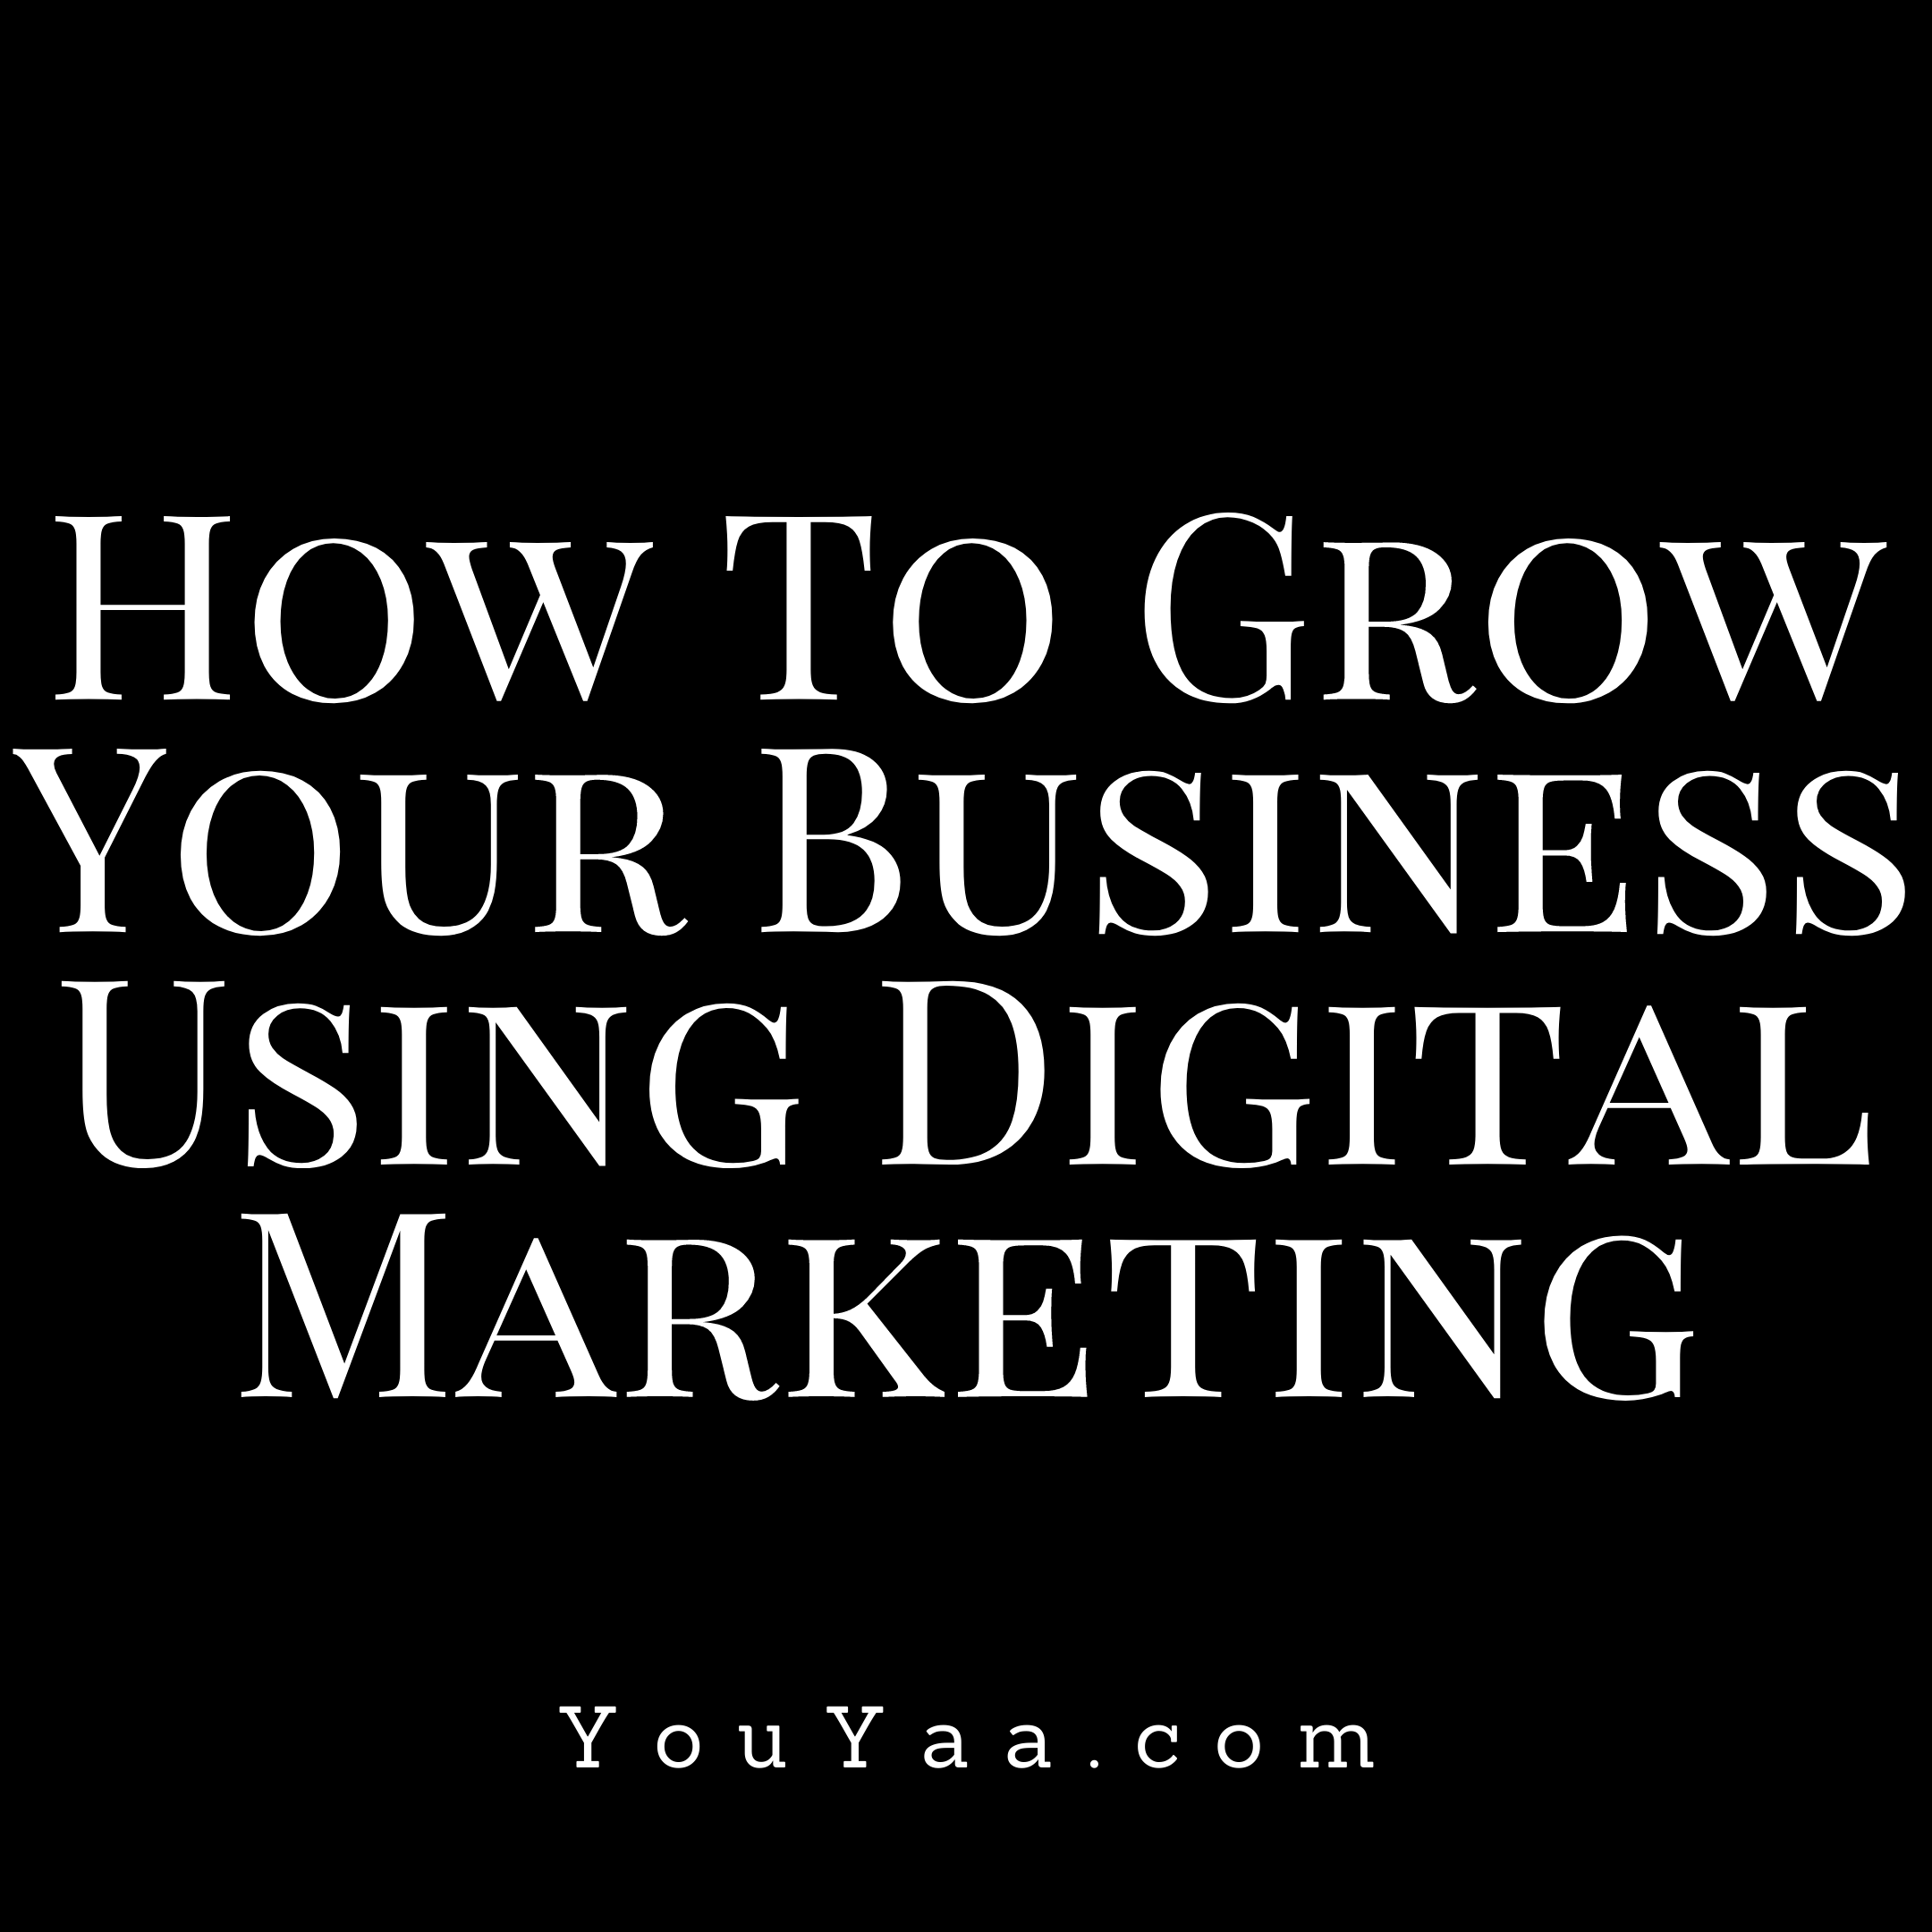 How to grow your business using digital marketing